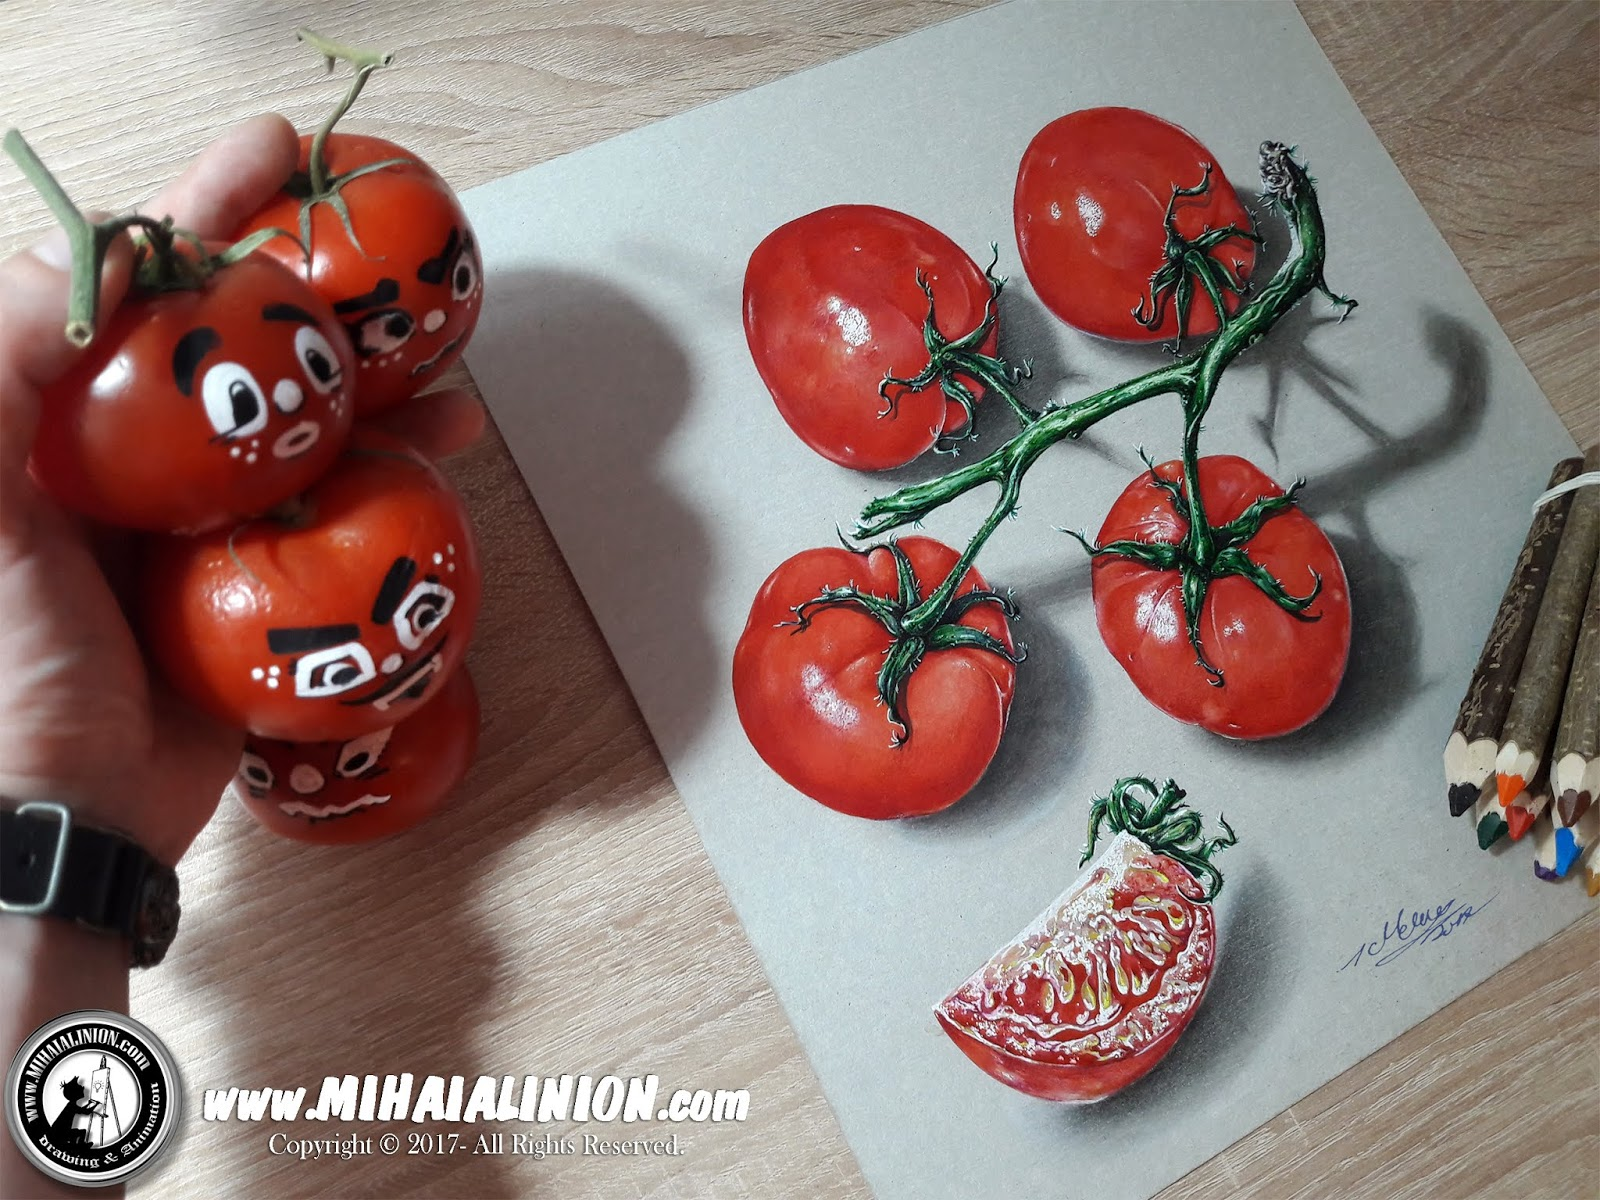 Drawing Tomatoes, Drawing tomato, Drawing vegetables, tomato illustration, vegetables illustration, funny tomato, tomato juice, painting tomatoes, How to draw a tomato, How to draw vegetables, how to draw stuff, tomato pencil drawing, tomato bunch, vegetables, rotten tomatoes, Product Design, Realistic 3D Art, Realistic Drawing, drawing object shadows, Realistic 3D Art, drawing 3d objects, illustrations by mihai alin ion, MAI Comics, Mihai Alin Ion, art by mihai alin ion, how to draw, artselfie, drawing ideas, free drawing lessons, drawing tutorial, art, dessin, disegno, dibujo, drawing for kids, drawing, illustration, painting, design, realistic 3d art, coloured pencils, www.mihaialinion.com, 2018, pencil drawing, tempera, acrilics paint, marker, gouache painting, mixed media, comics, comic book, caricature, portrait, cum sa desenezi, caricaturi mihai alin ion, caricaturi si portrete  la comanda, eveniment caricaturi, caricaturi la nunta, caricaturi la botez, caricaturi la majorat, desene pe pereti, desene pentru copii, ilustratie carte, benzi desenate, caricaturi, portrete, comanda caricaturi